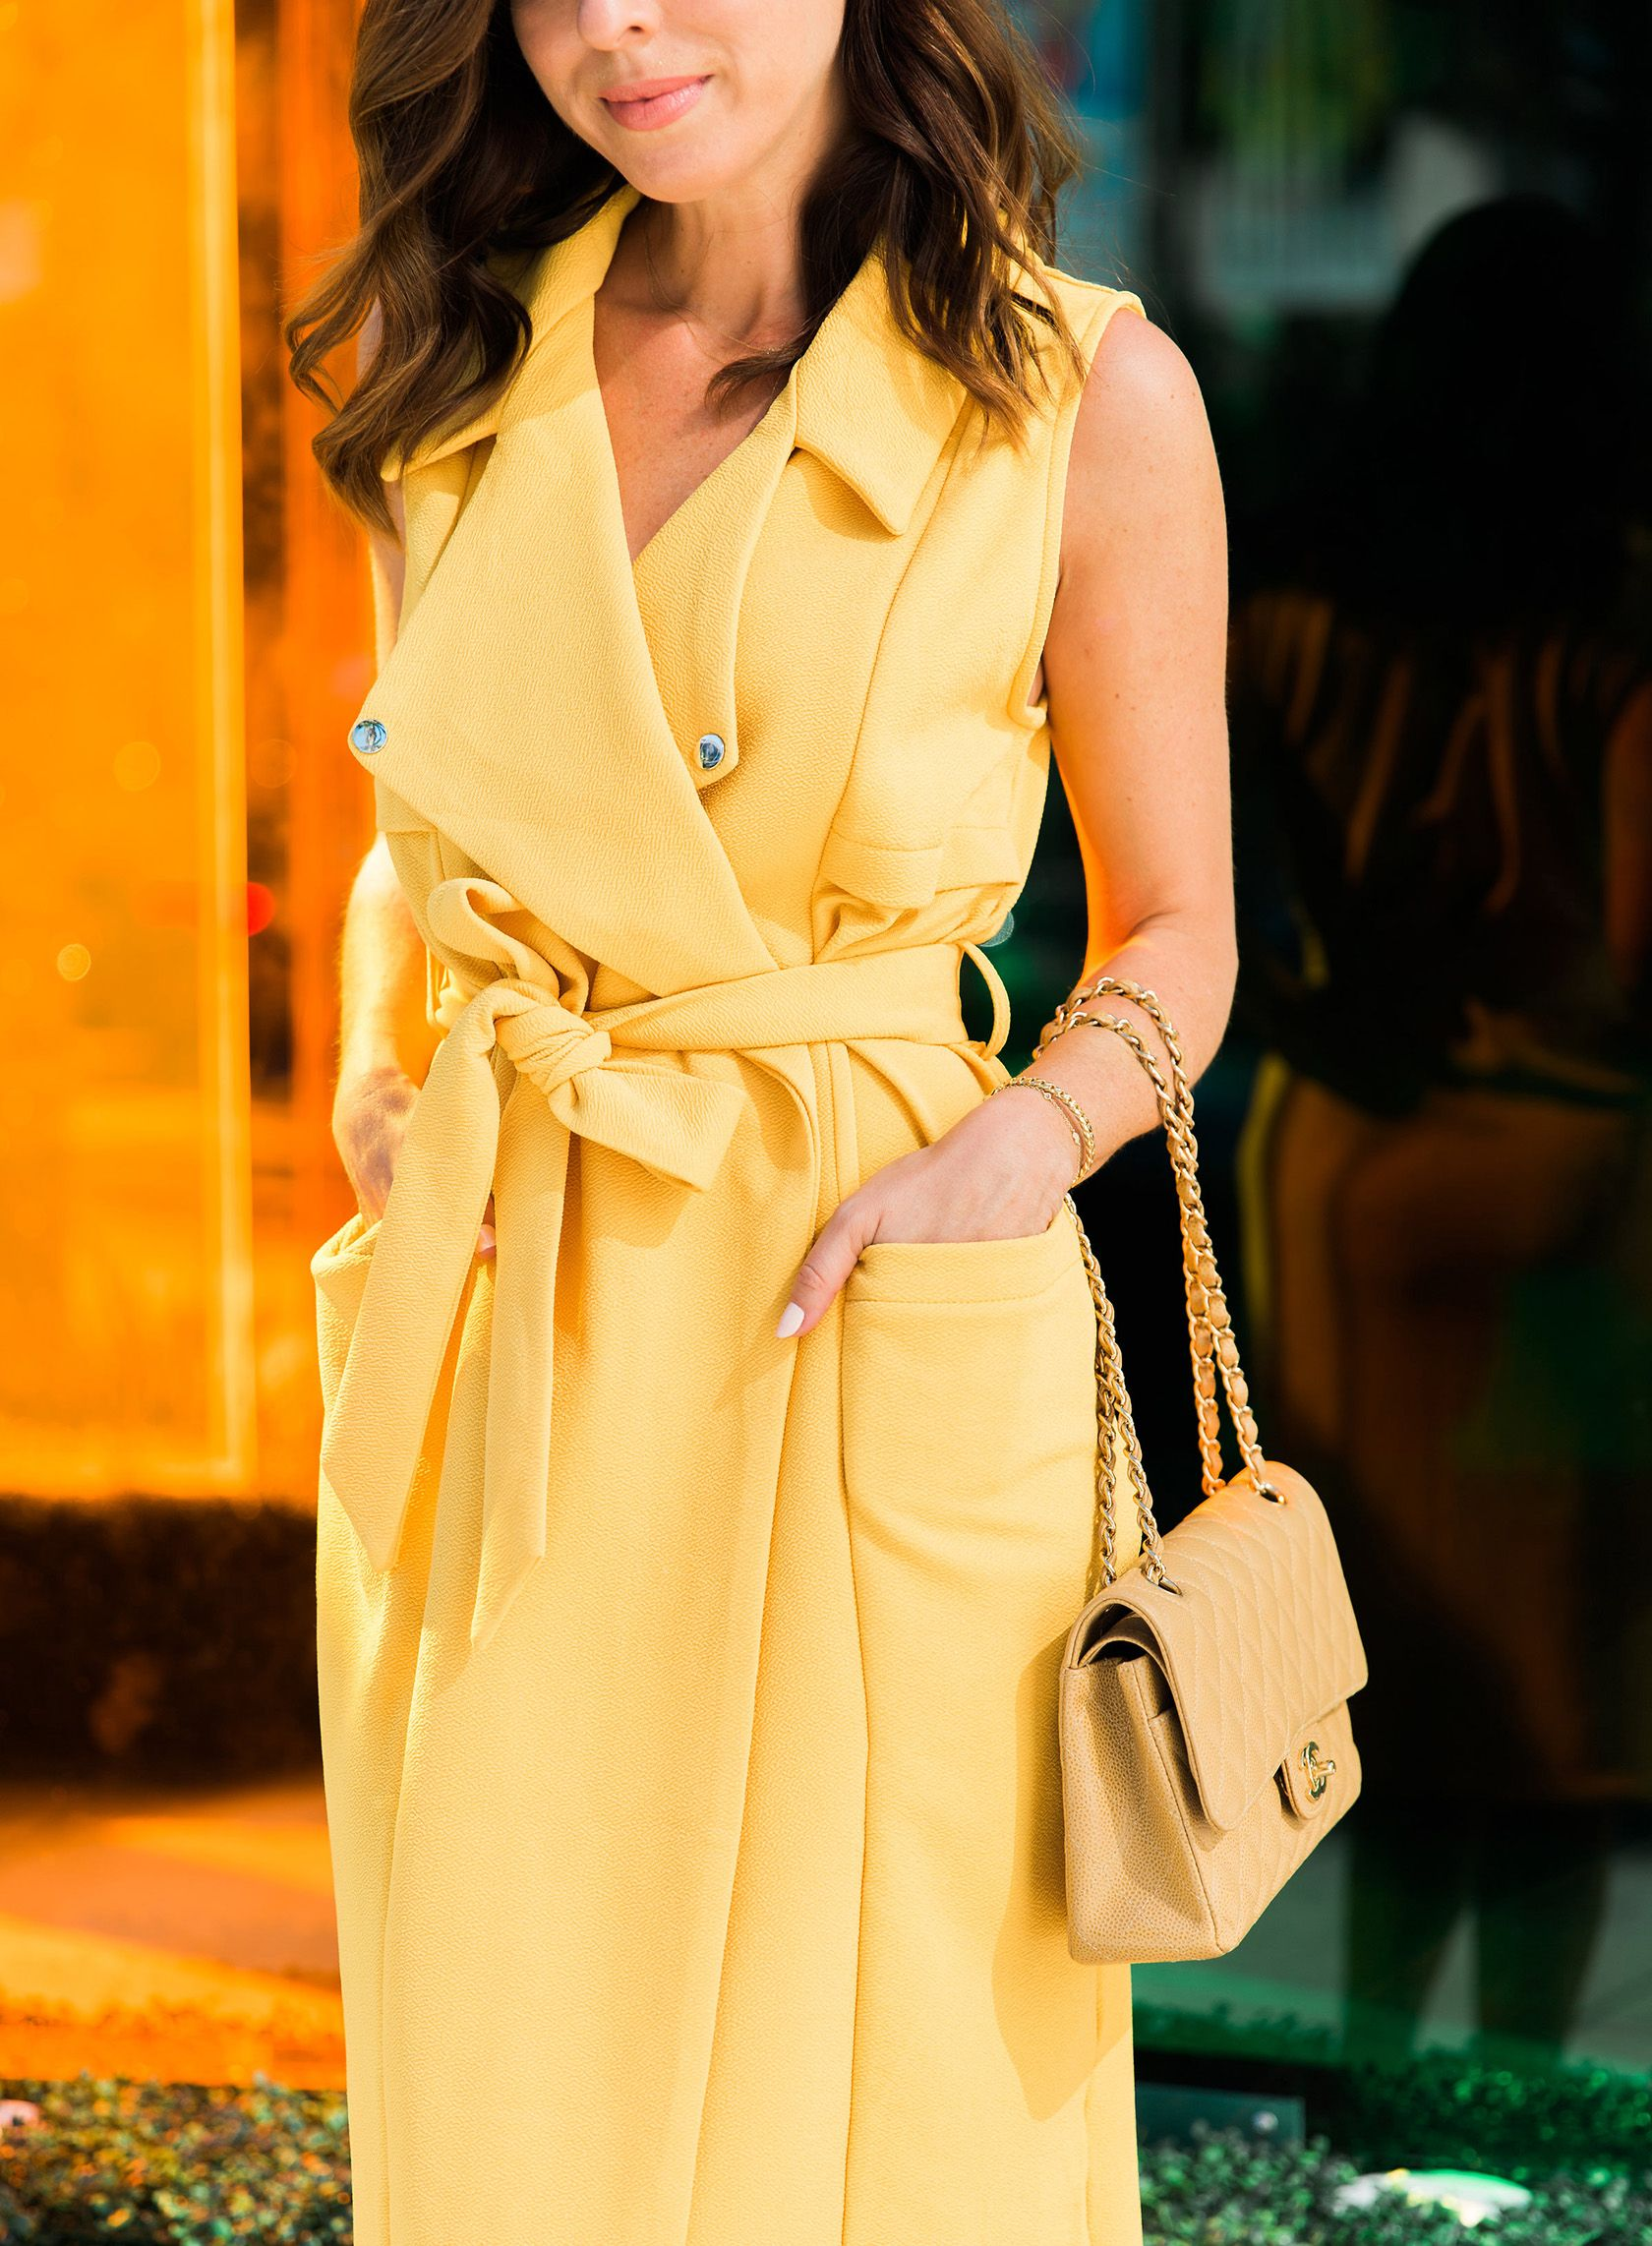 150b8f0df8 Sydne Style wears shein sleeveless trench dress for office outfit ideas  #yellow #trench #vest #chanel